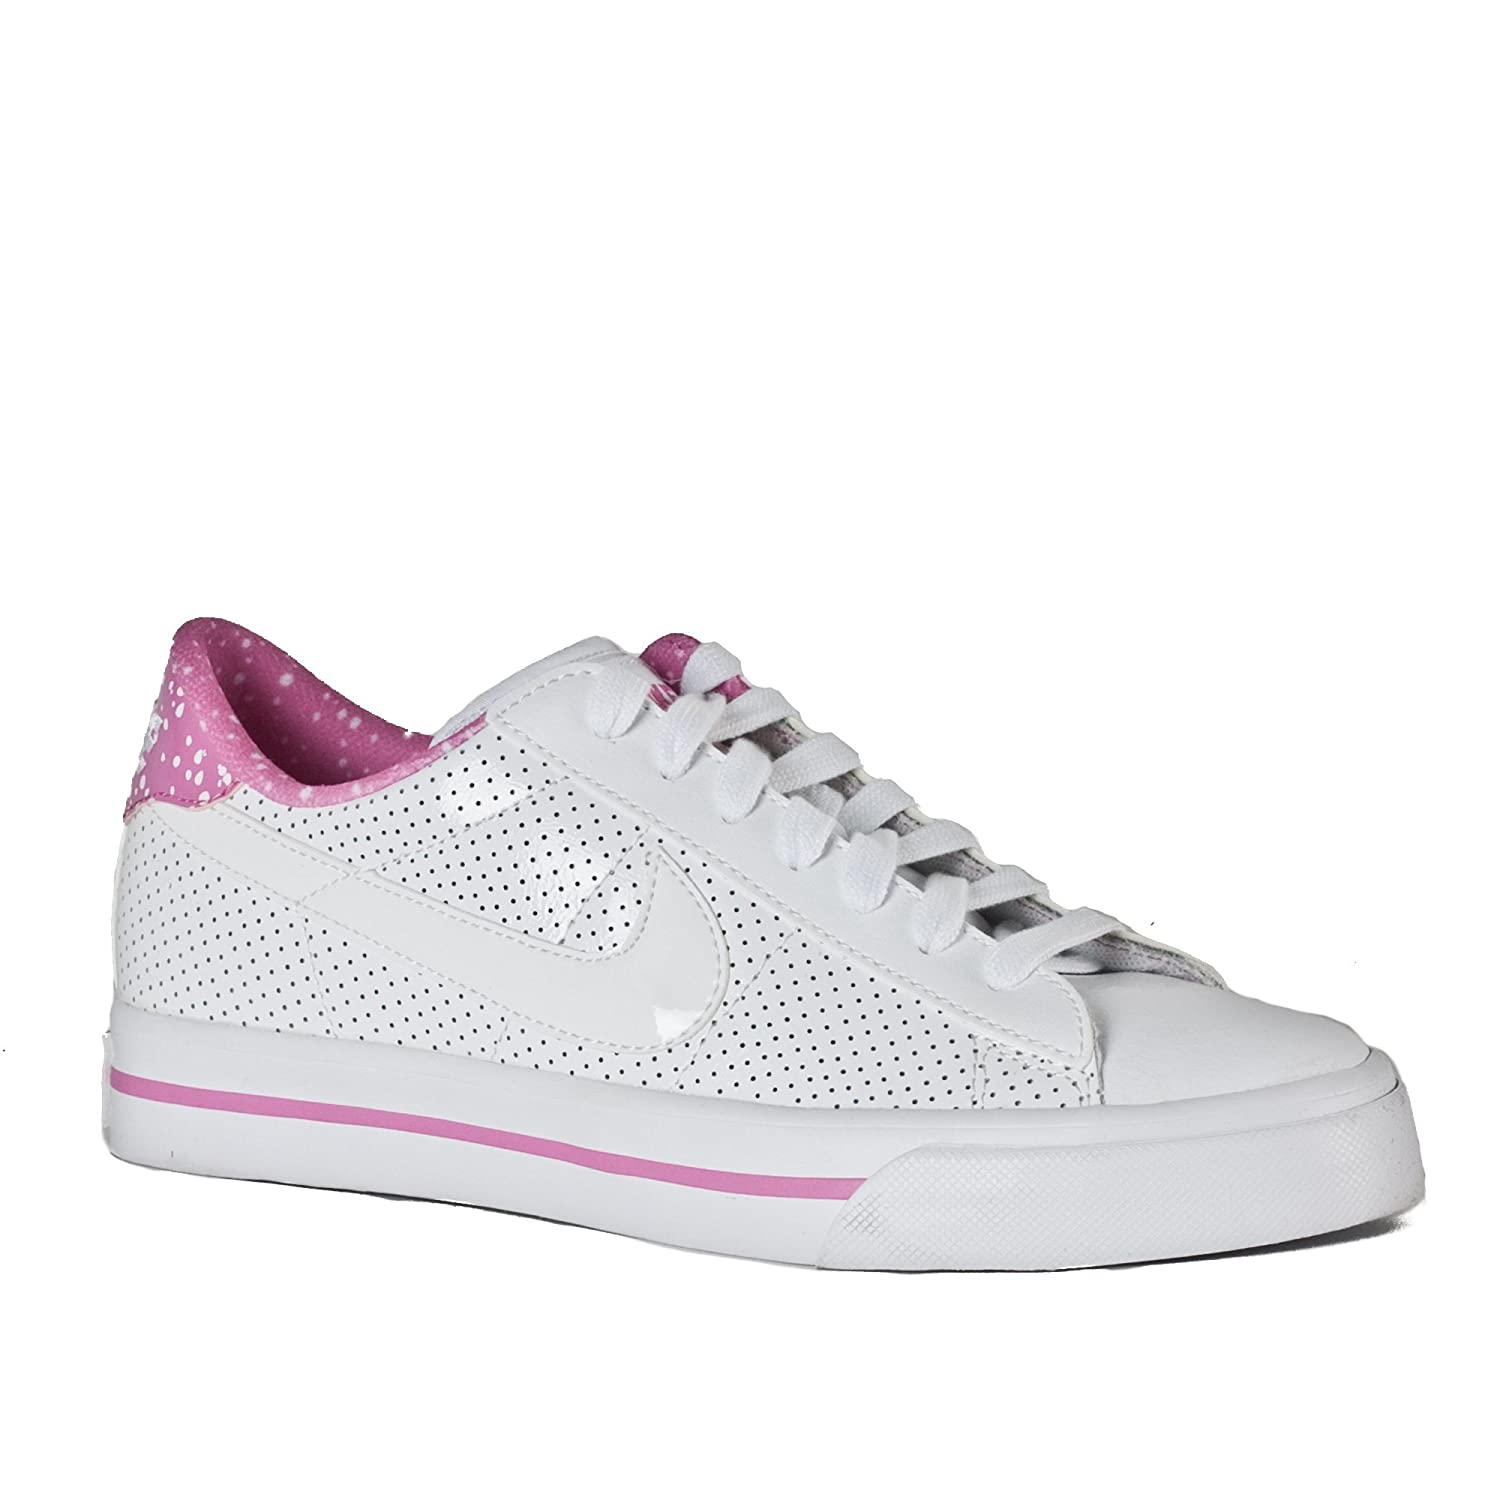 competitive price 5a2c9 b2140 Amazon.com   Nike Trainers Shoes Mens Sweet Classic Leather Si White    Soccer